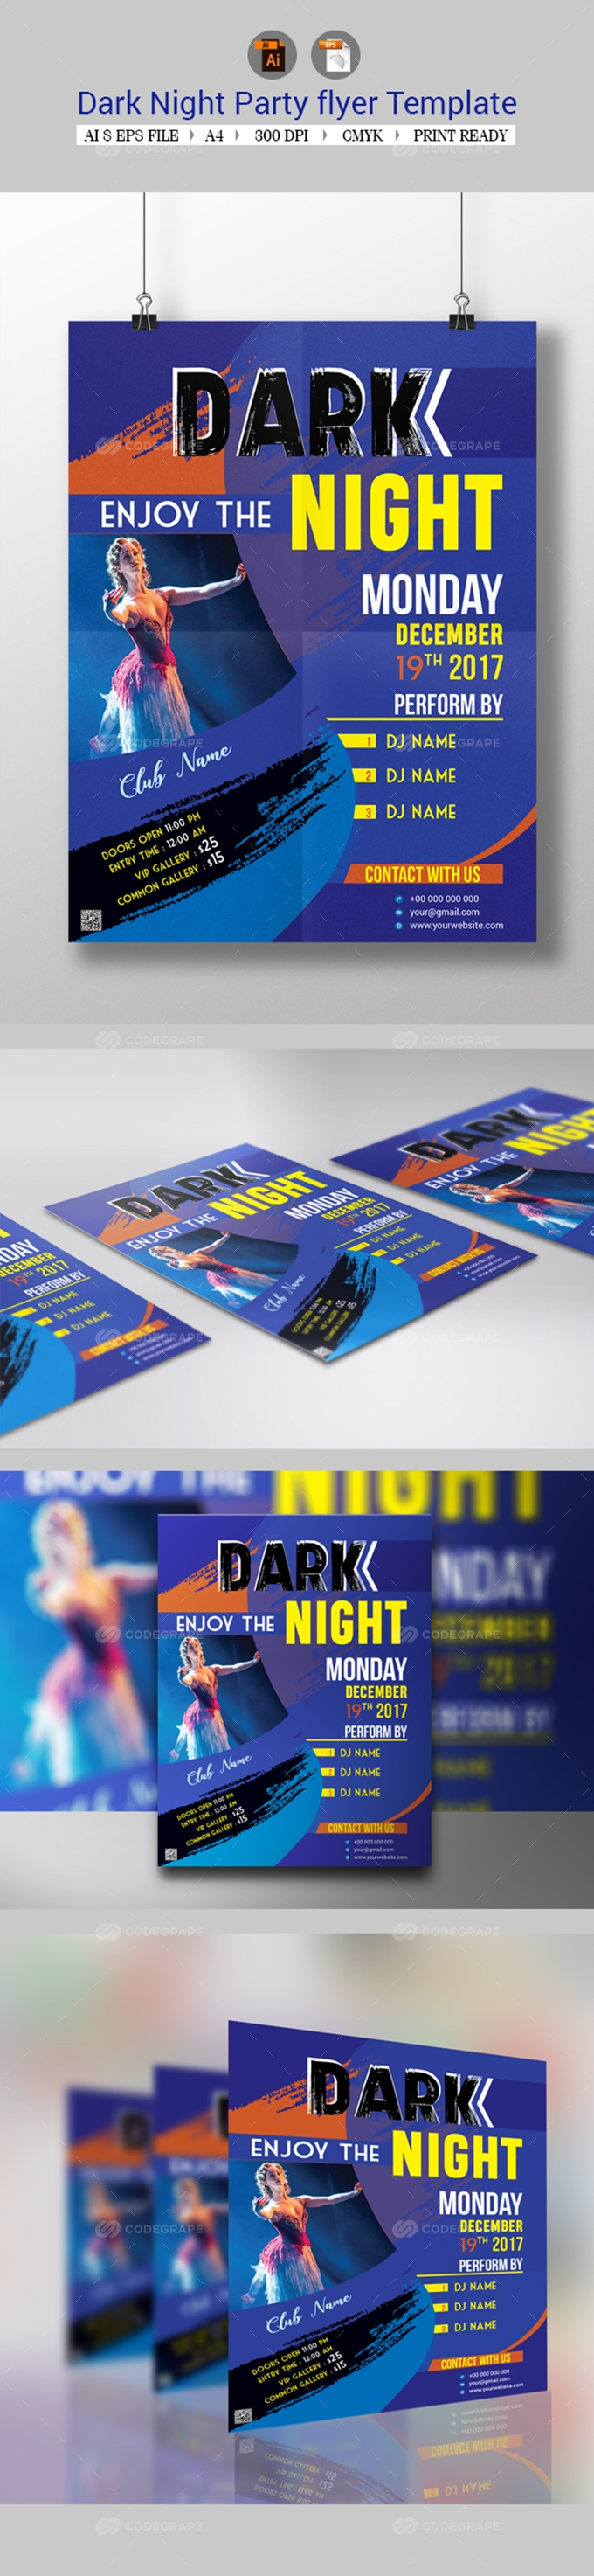 Dark Night Party Flyer